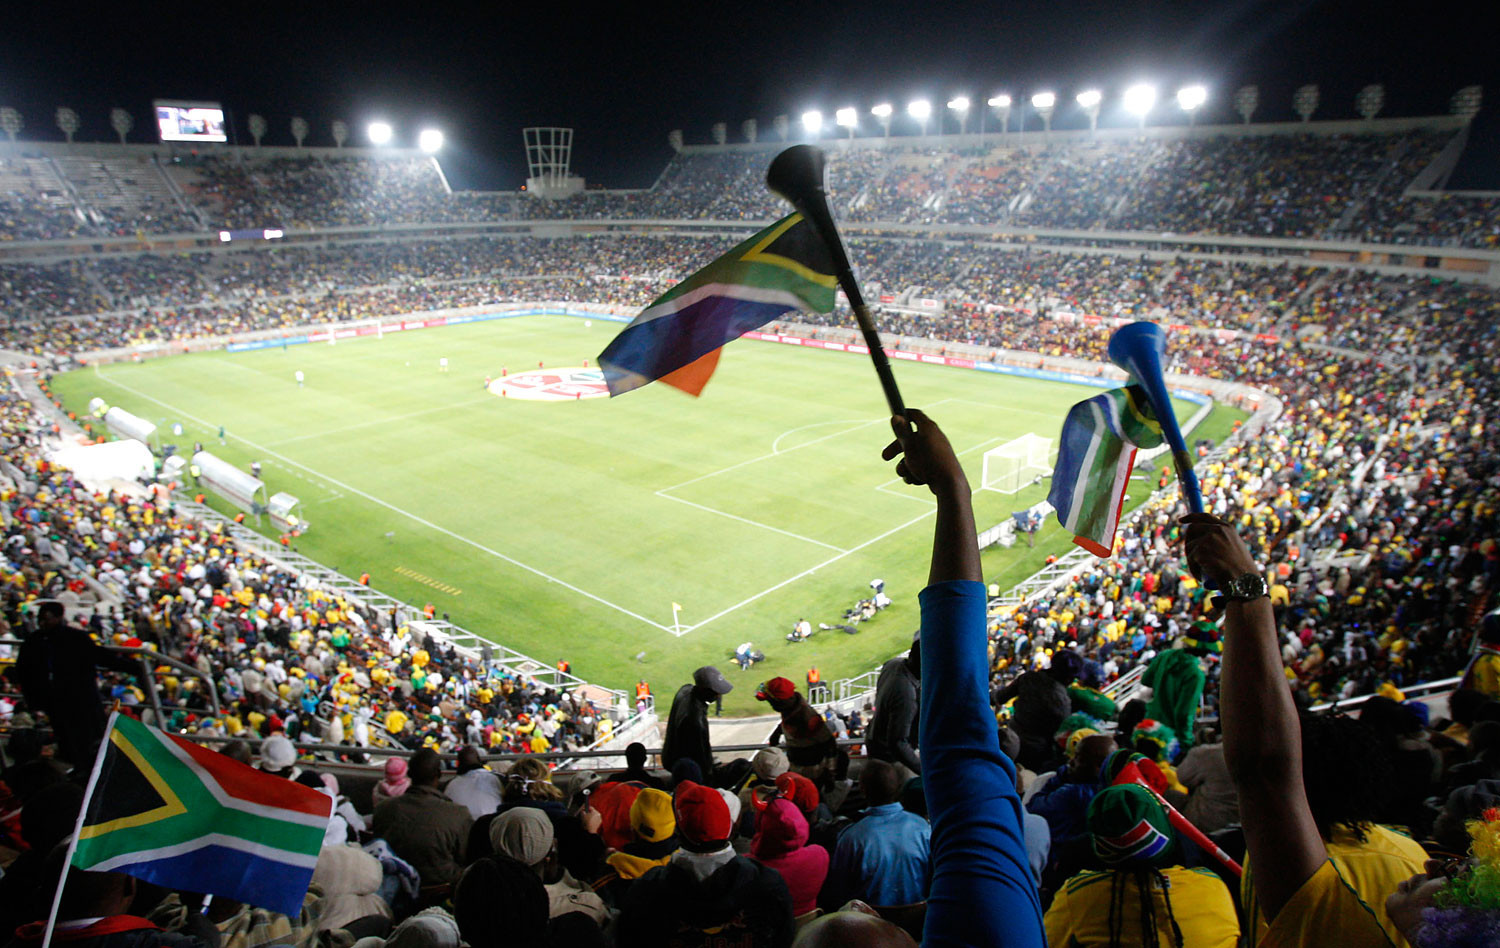 South Africa would use the facilities built for the 2010 FIFA World Cup to host the 2019 Africa Cup of Nations if they are chosen to replace Cameroon ©Getty Images